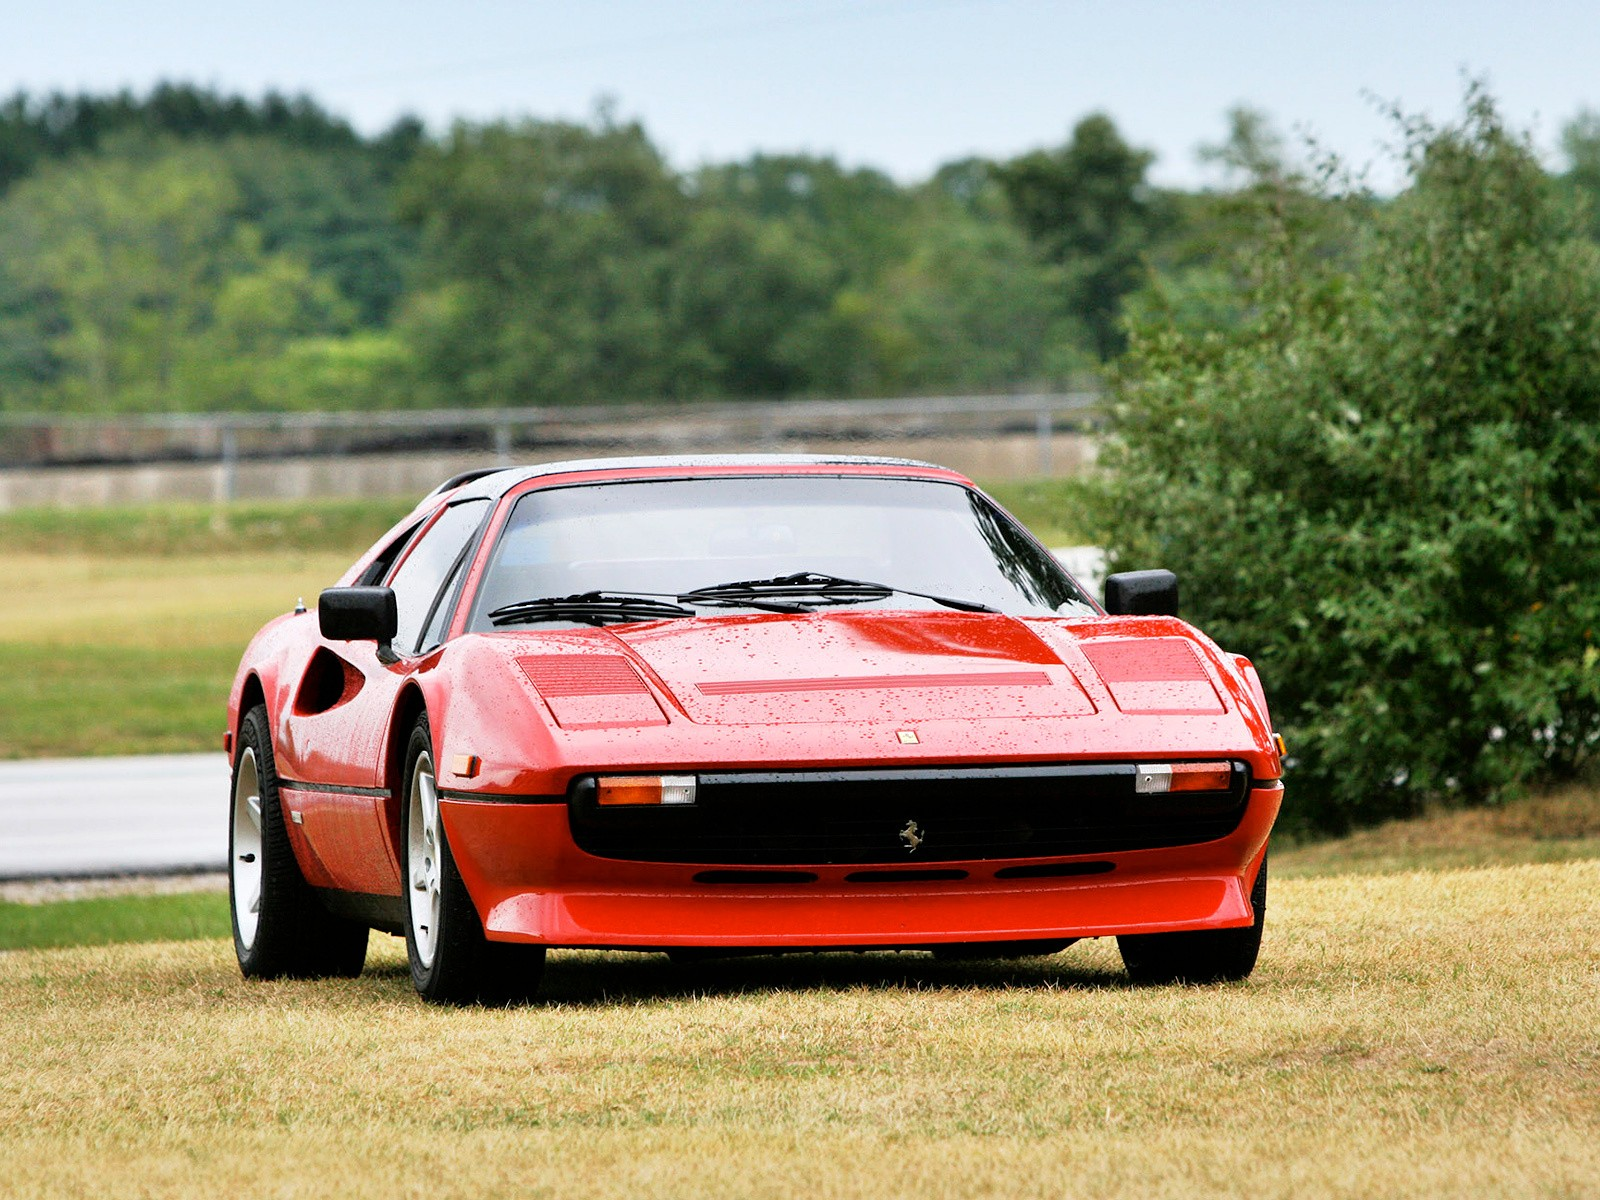 ferrari 308 gtsi quattrovalvole 1982 1983 1984 1985 autoevolution. Black Bedroom Furniture Sets. Home Design Ideas